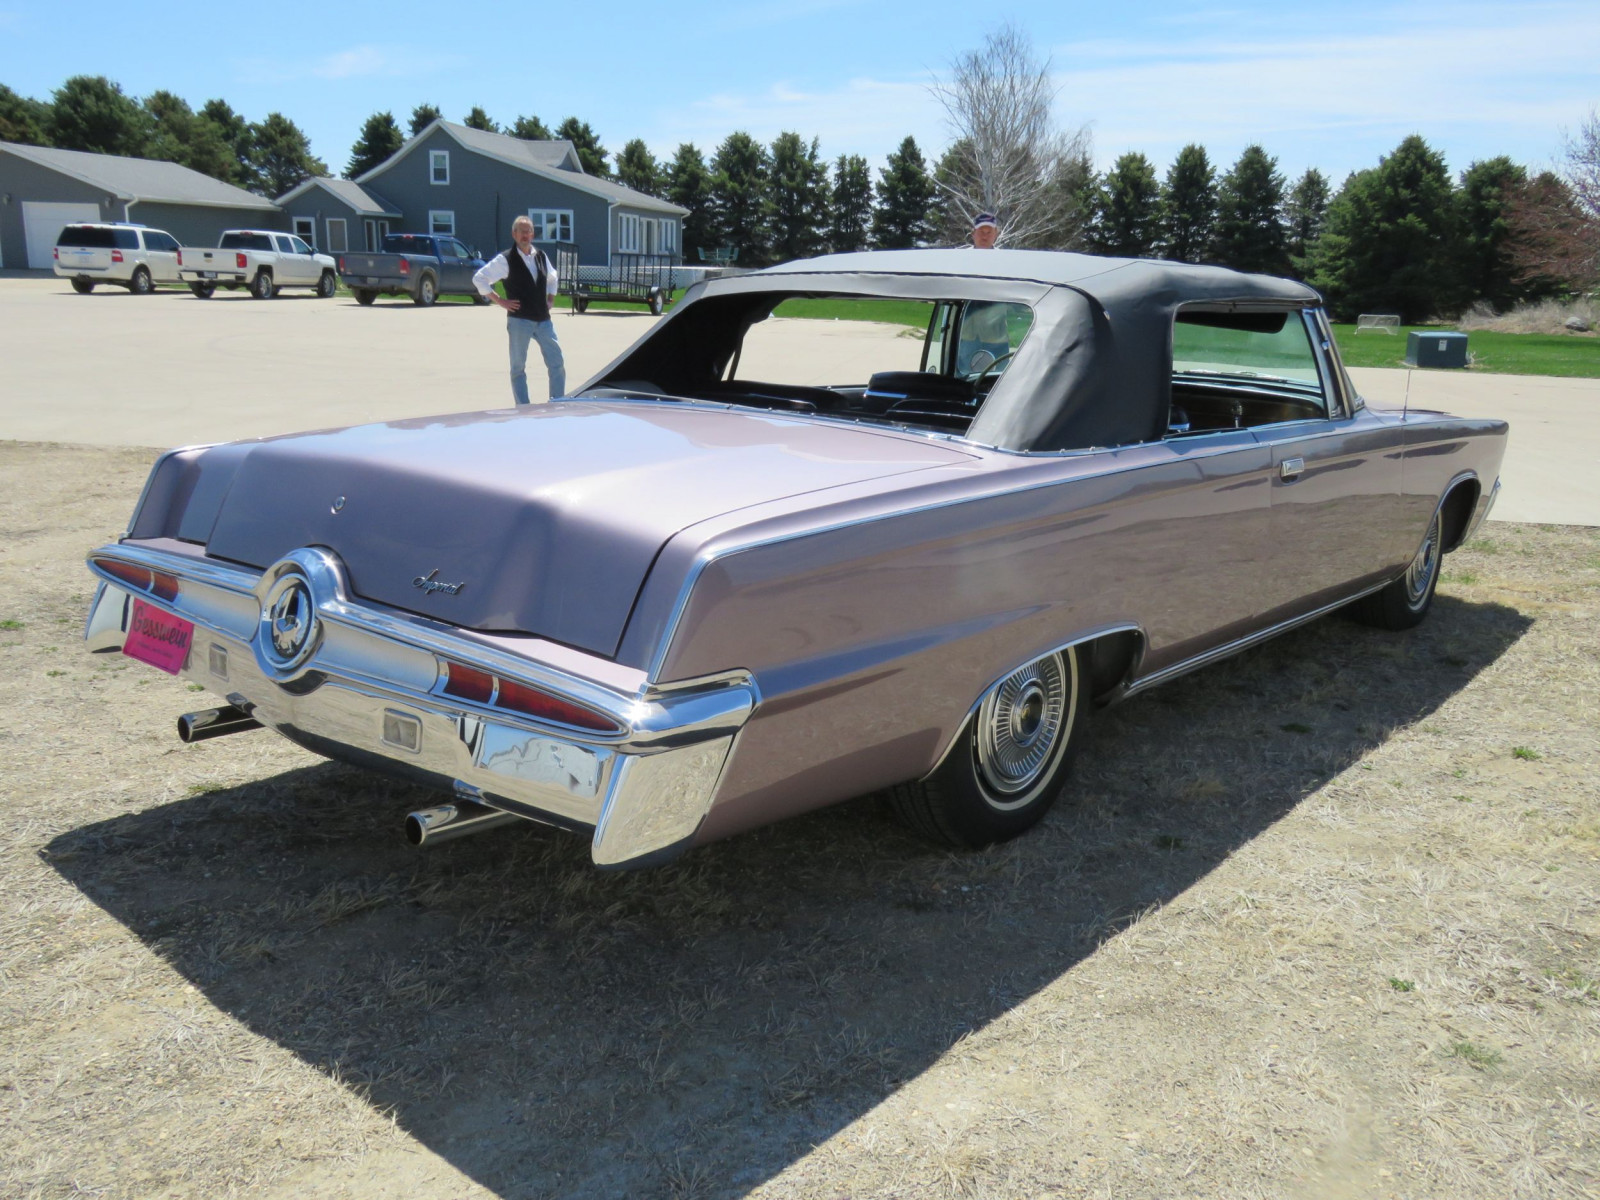 1966 Chrysler Imperial Crown Convertible - Image 12